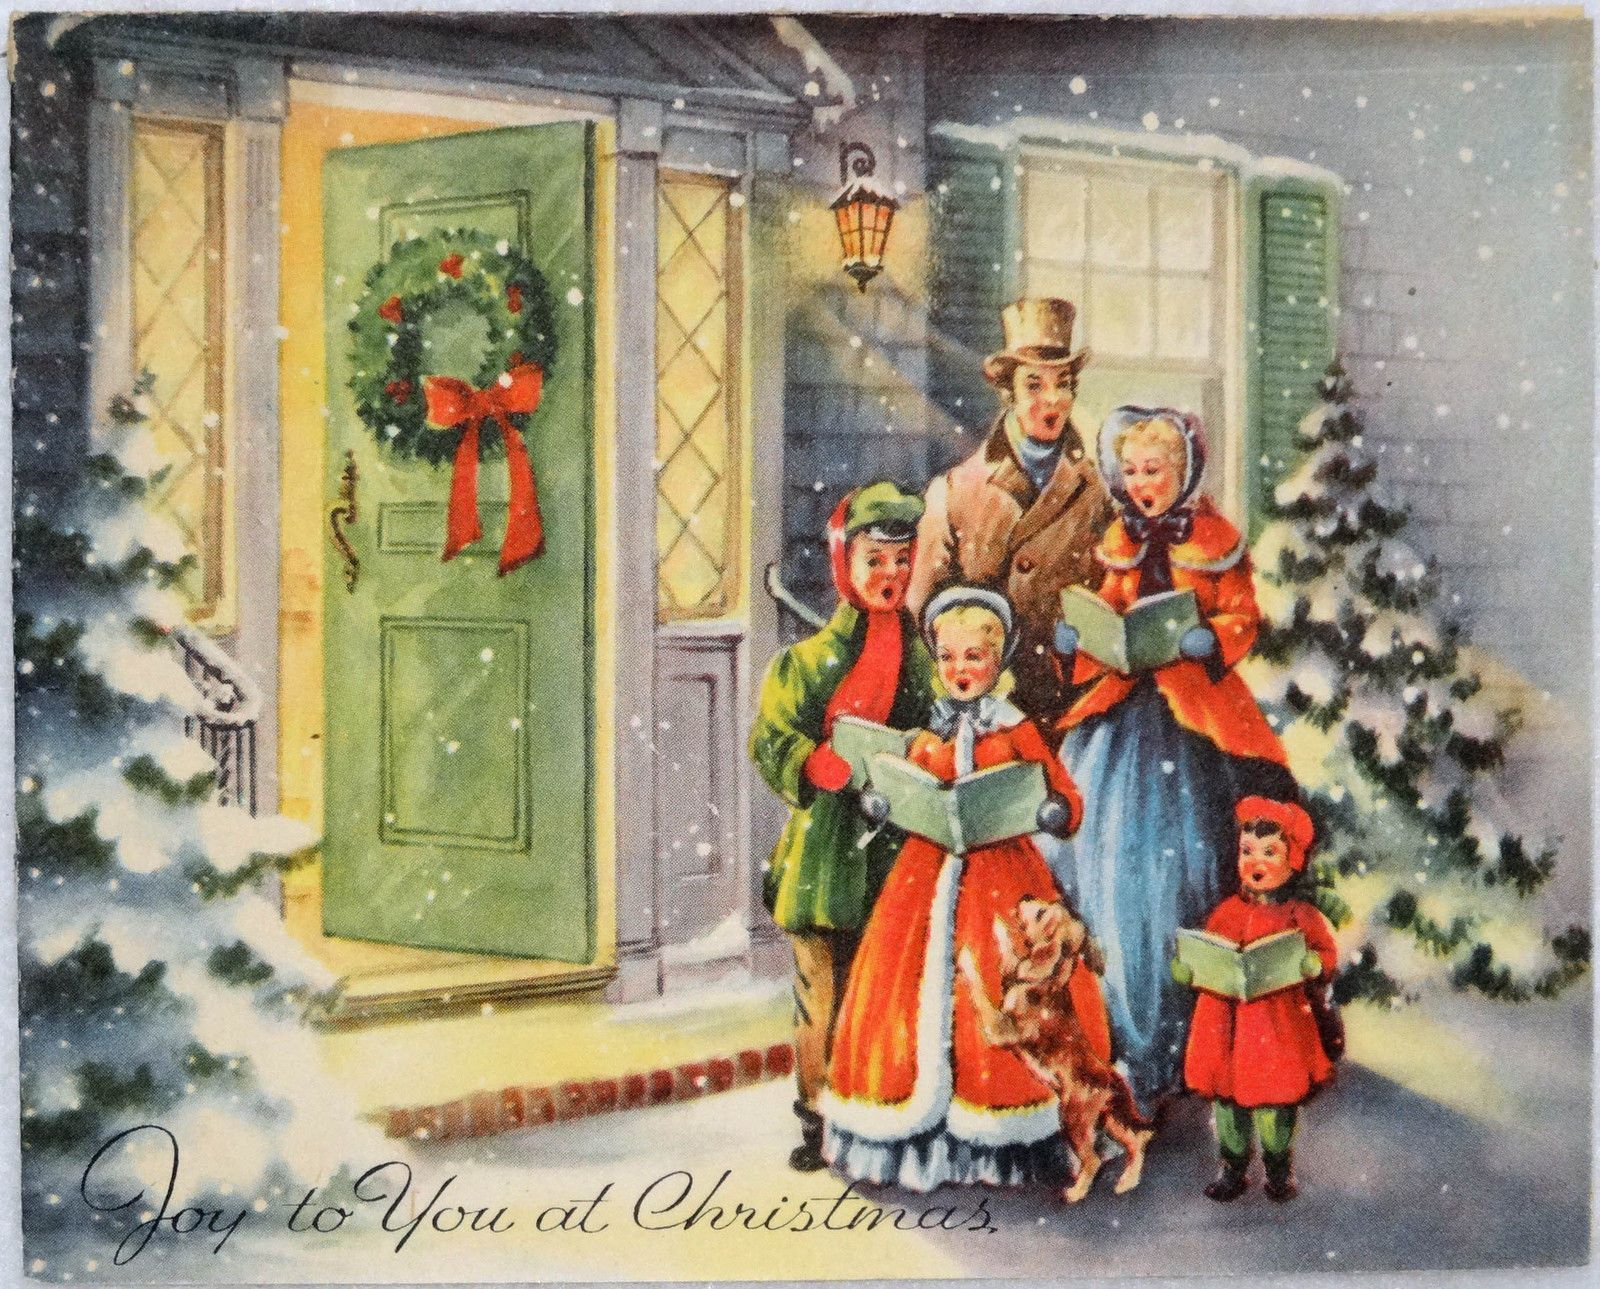 676 50s carolers at the front door vintage christmas greeting card 676 50s carolers at the front door vintage christmas greeting card ebay kristyandbryce Choice Image